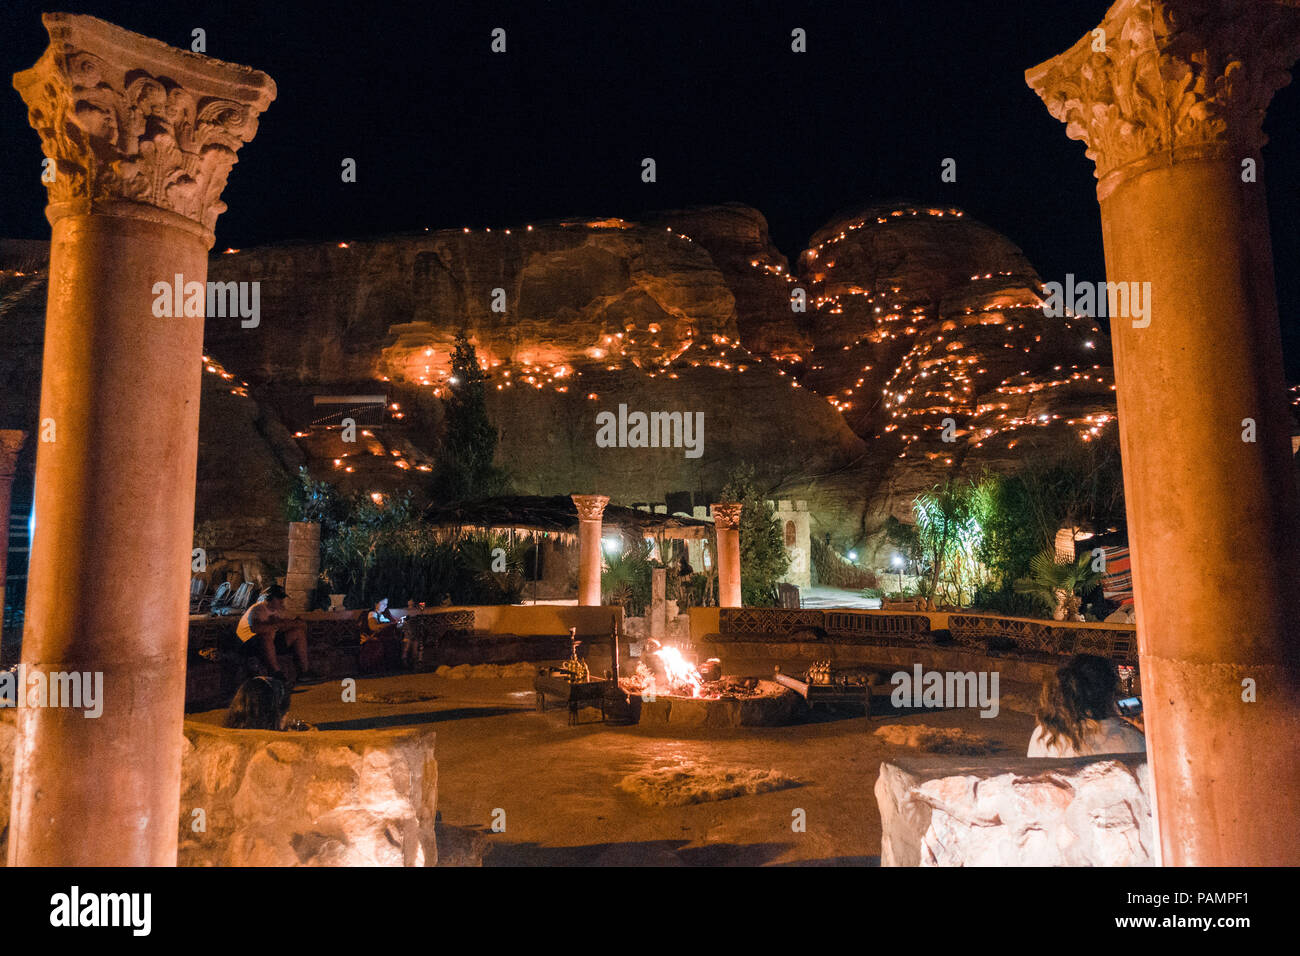 the view at night over the common area of a tourist Bedouin camp in Wadi Musa, near Petra, Jordan - Stock Image